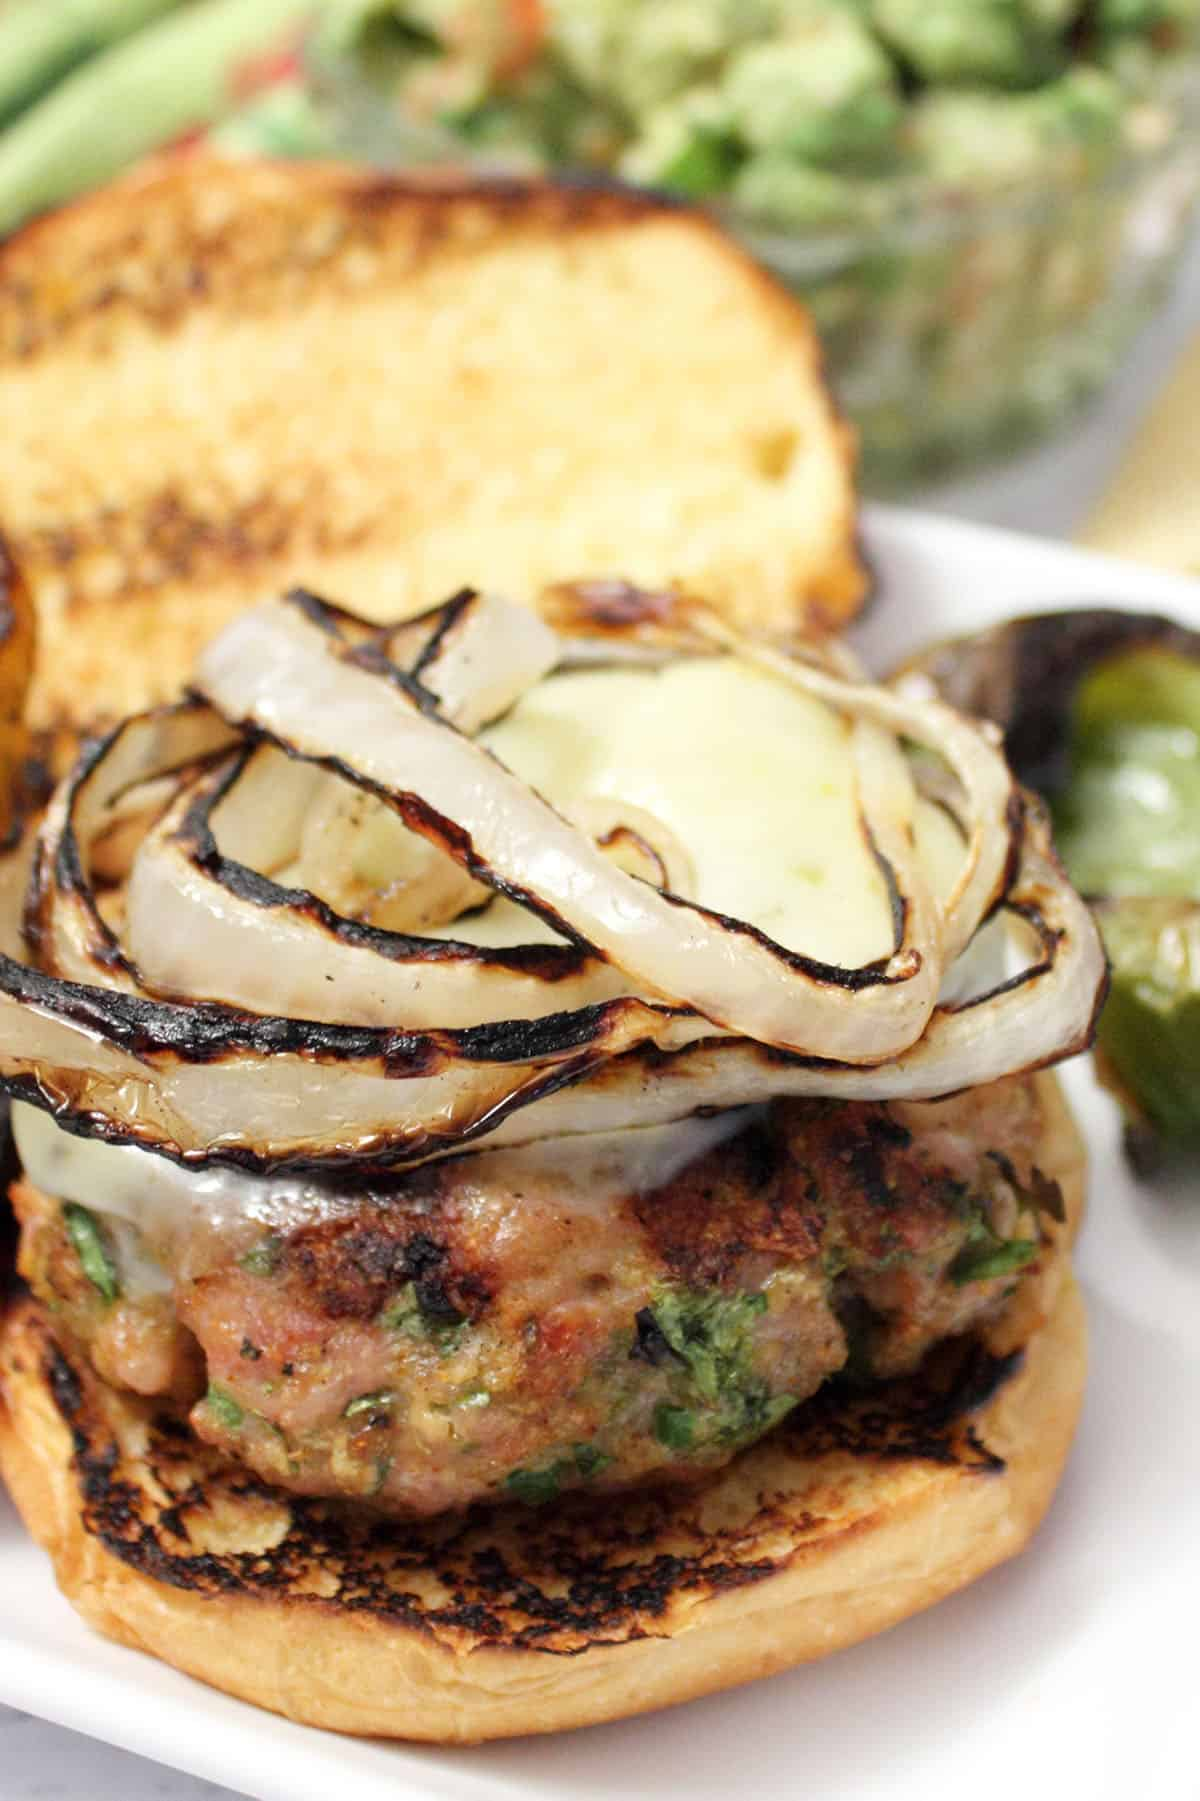 Closeup of burger on a toasted roll with topping of grilled onions.